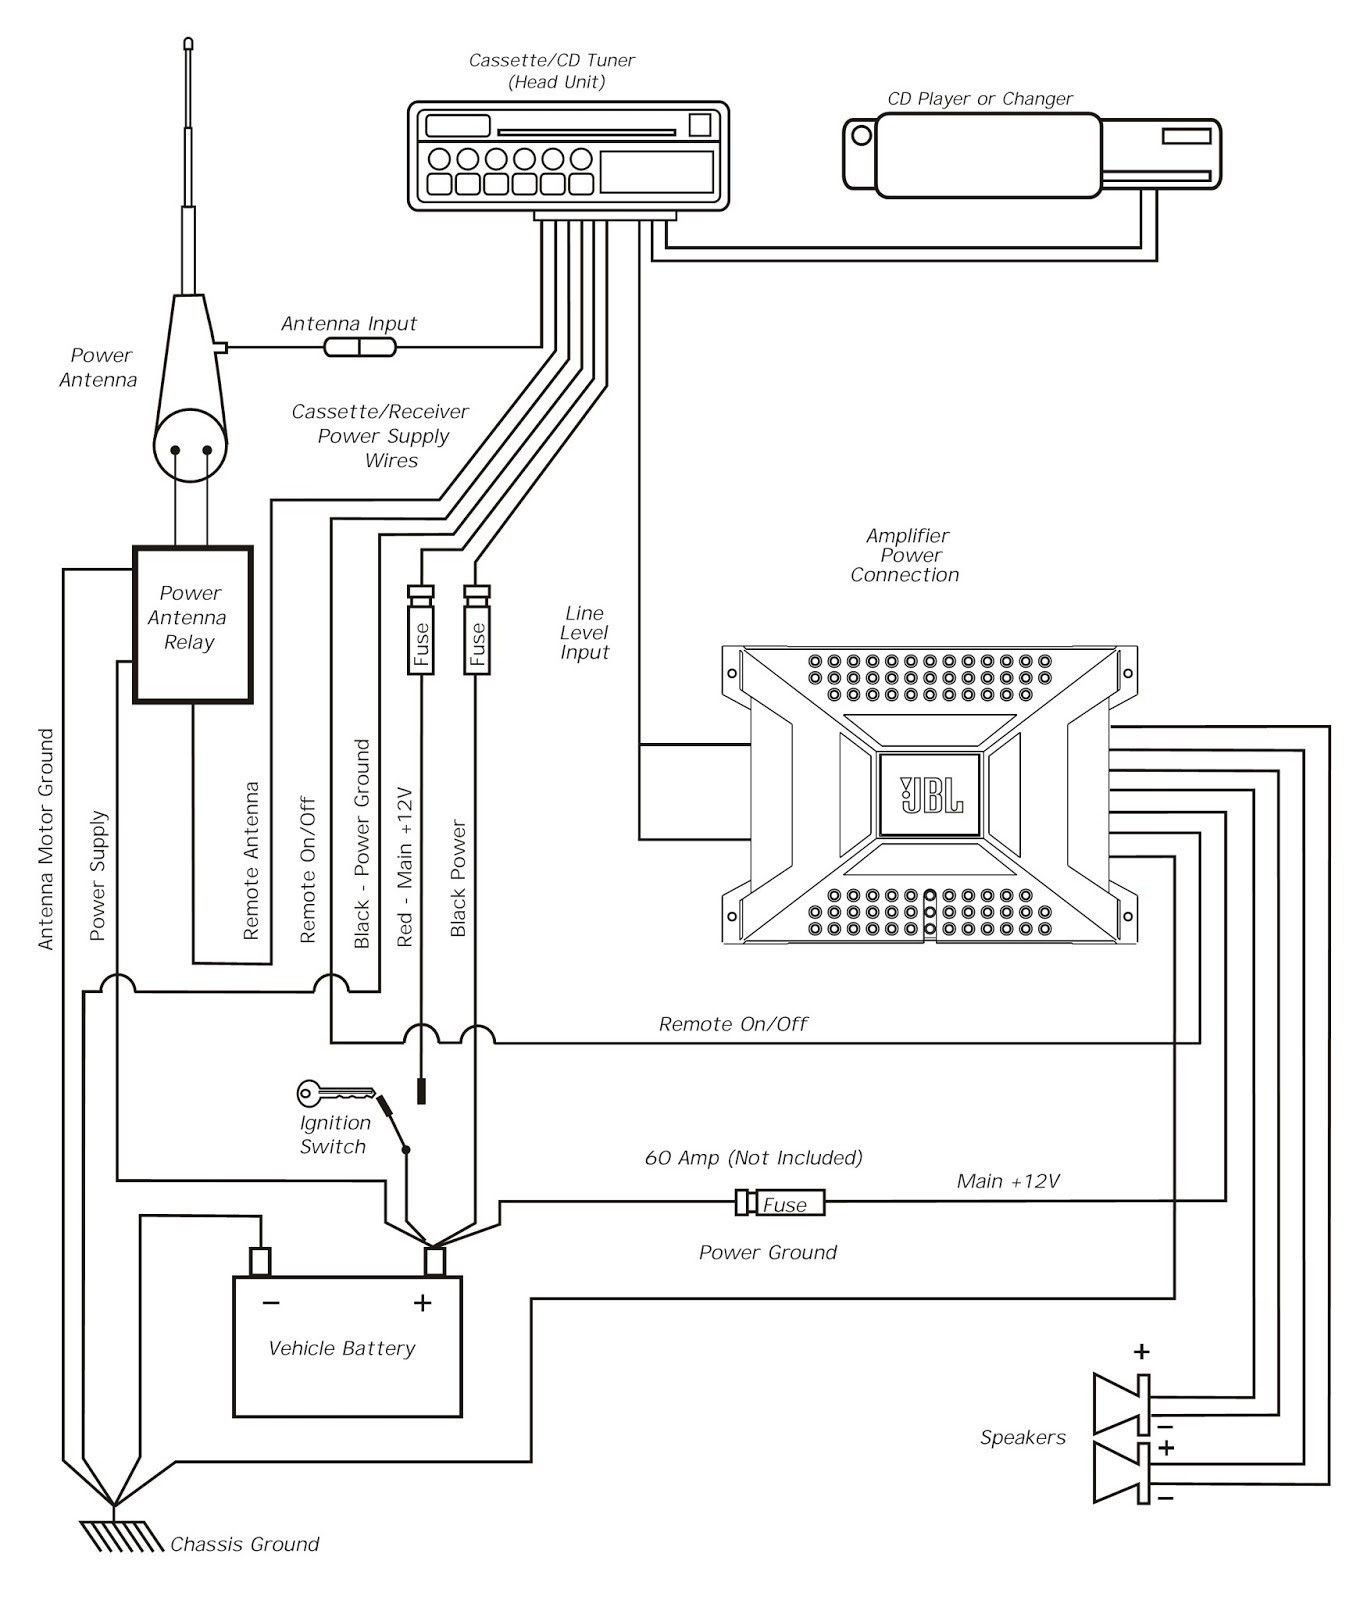 Car Interior Diagram Awesome Audi Quattro 2003 Of Car Interior Diagram